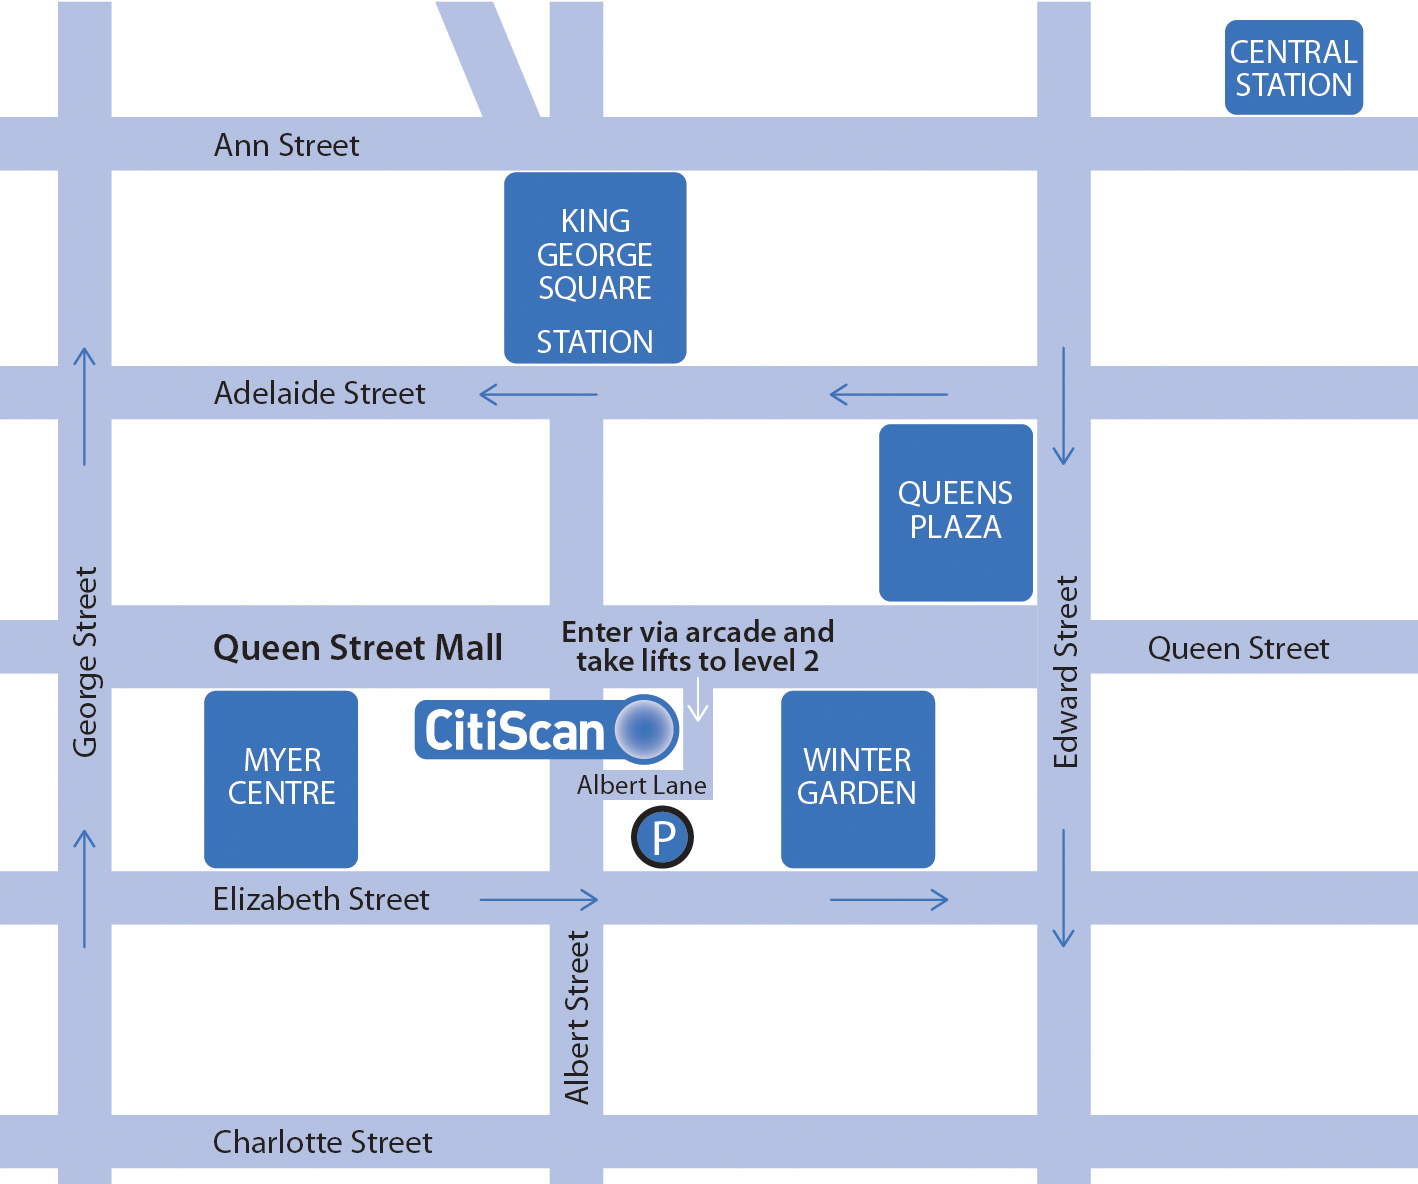 - CitiScan Radiology Brisbane CBDSUITE 4, Level 2141 Queen StreetBrisbane QLD 4000Phone: (07) 3035 3700 Fax: (07) 3035 3755Email: reception@citiscan.com.auOpening Hours:Monday - Friday 8.30am - 5.00pmSaturday 9.00am - 1.00pm